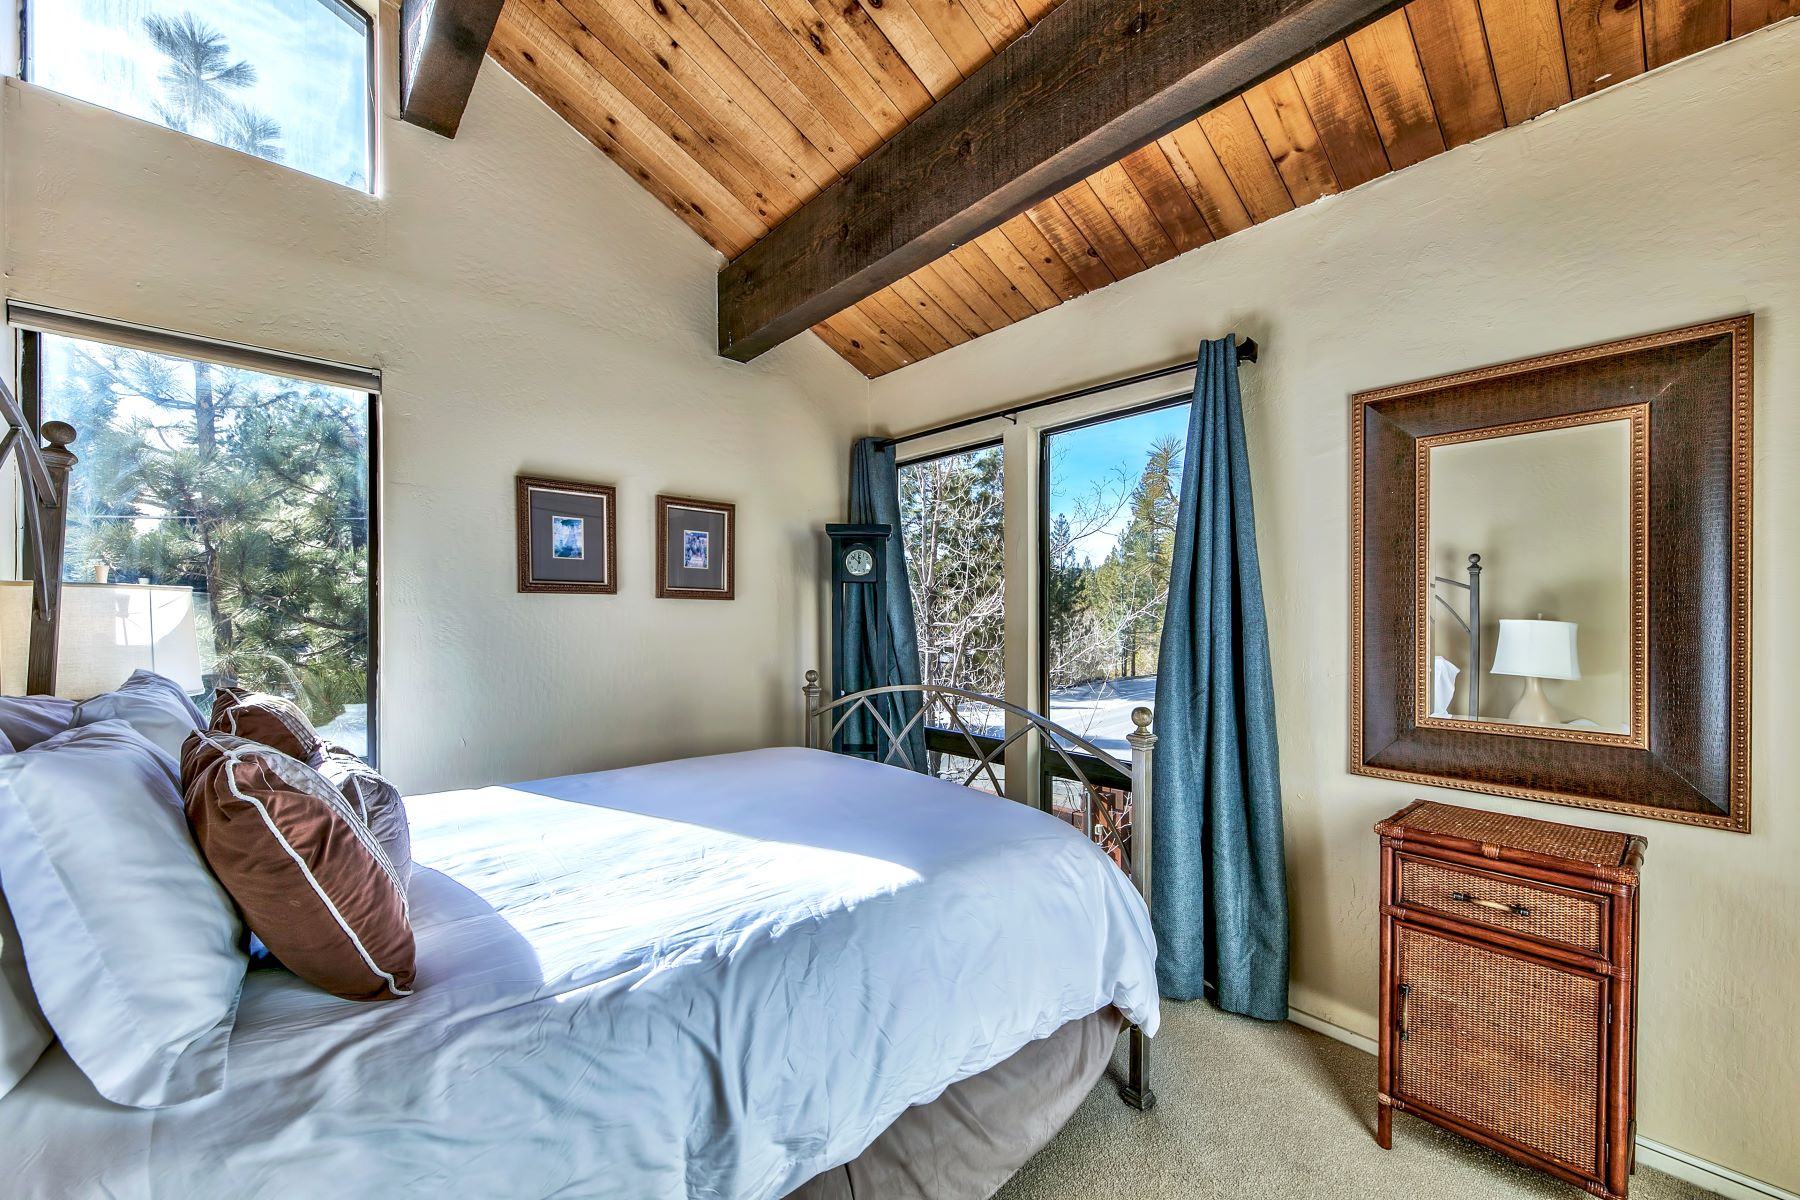 Additional photo for property listing at 1001 Commonwealth #1, Kings Beach, CA 1001 Commonwealth Dr #1 Kings Beach, California 96143 United States